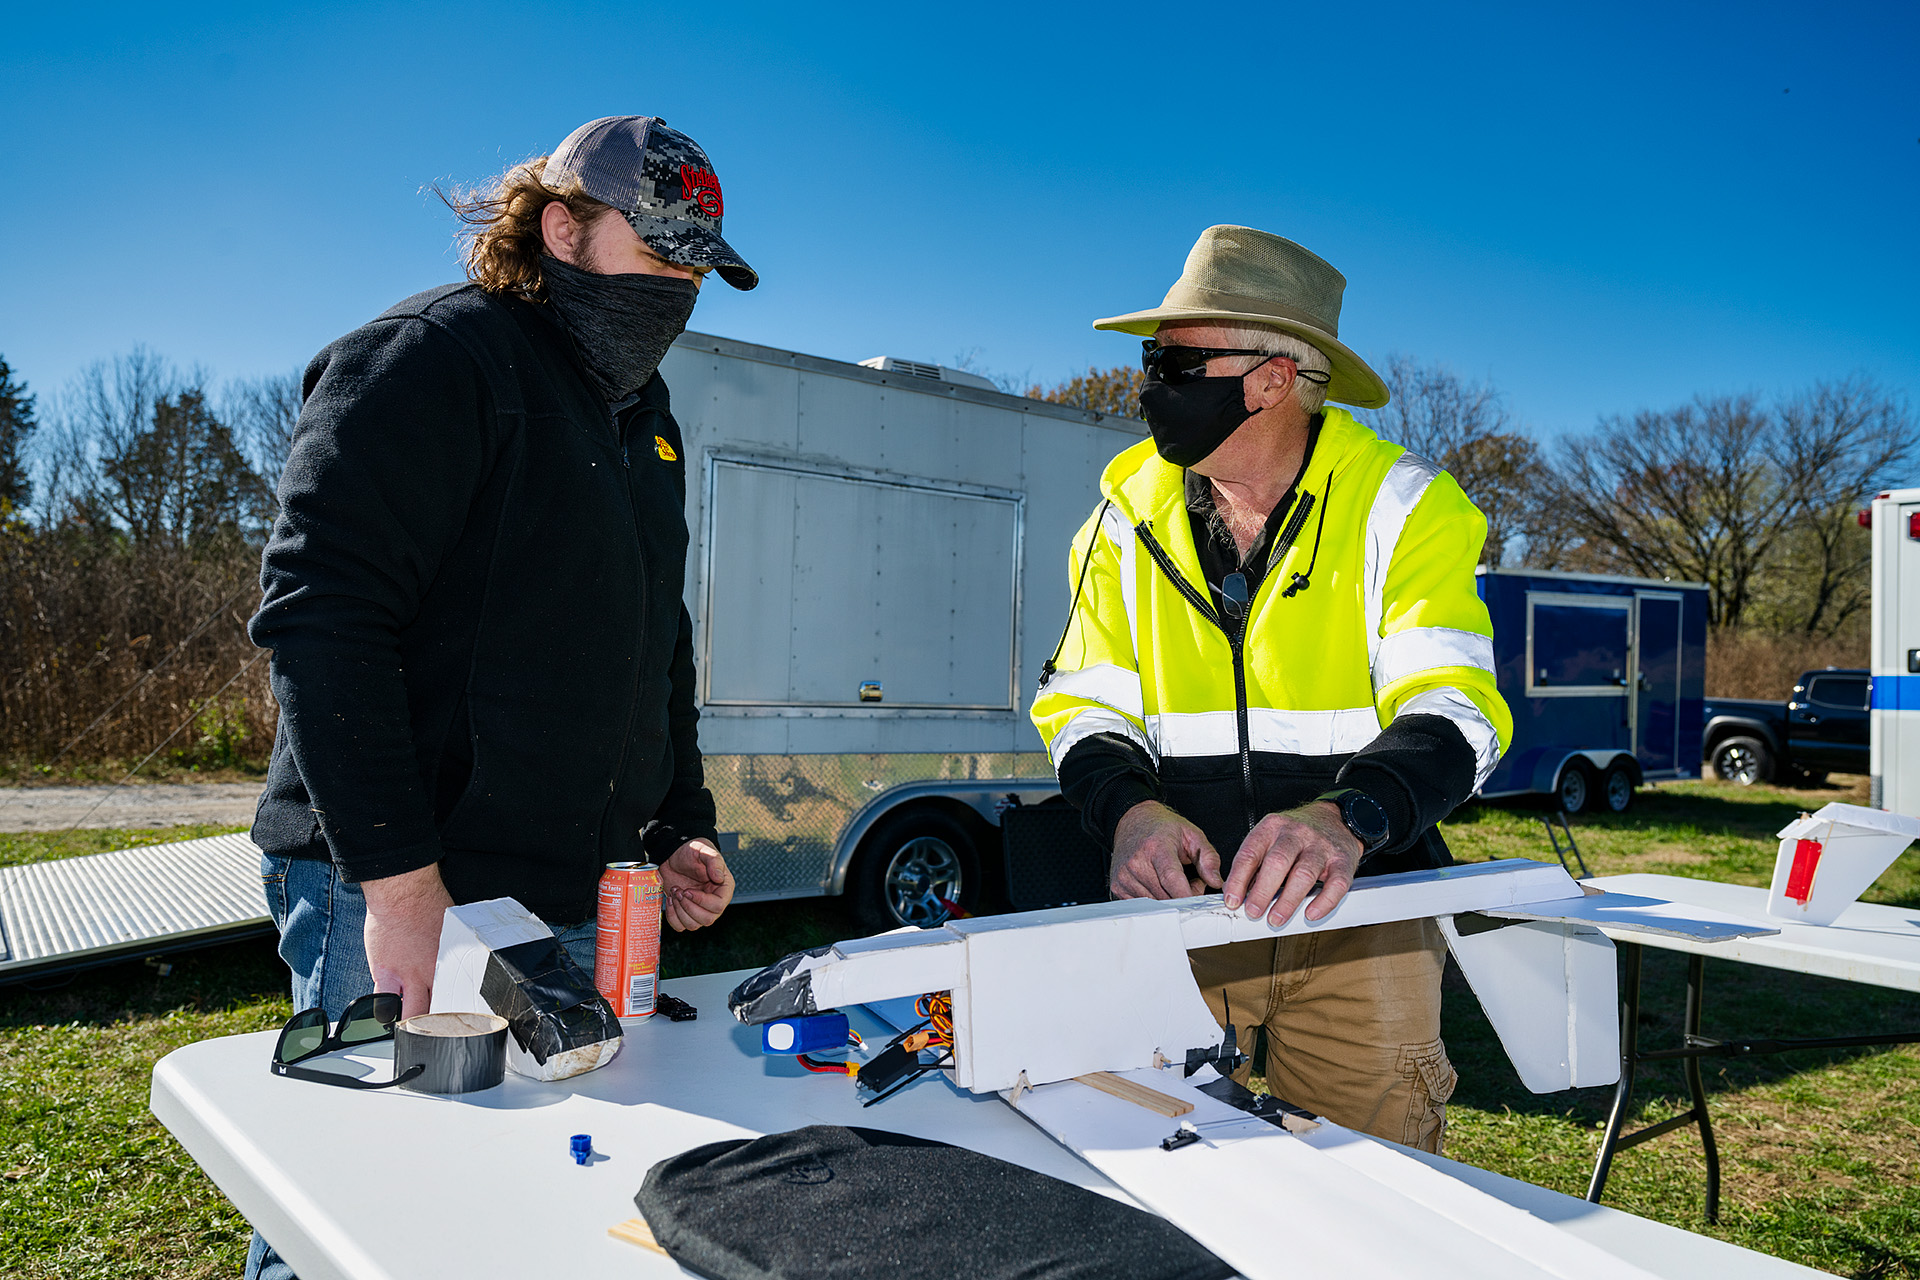 Kevin Corns, Aerospace faculty, with students flying their Unmanned Aerial System aircraft at the MTSU Farm. Brian Liddle (Jr.) left, with Kevin Corns, Aerospace faculty. (Photo: Andy Heidt)